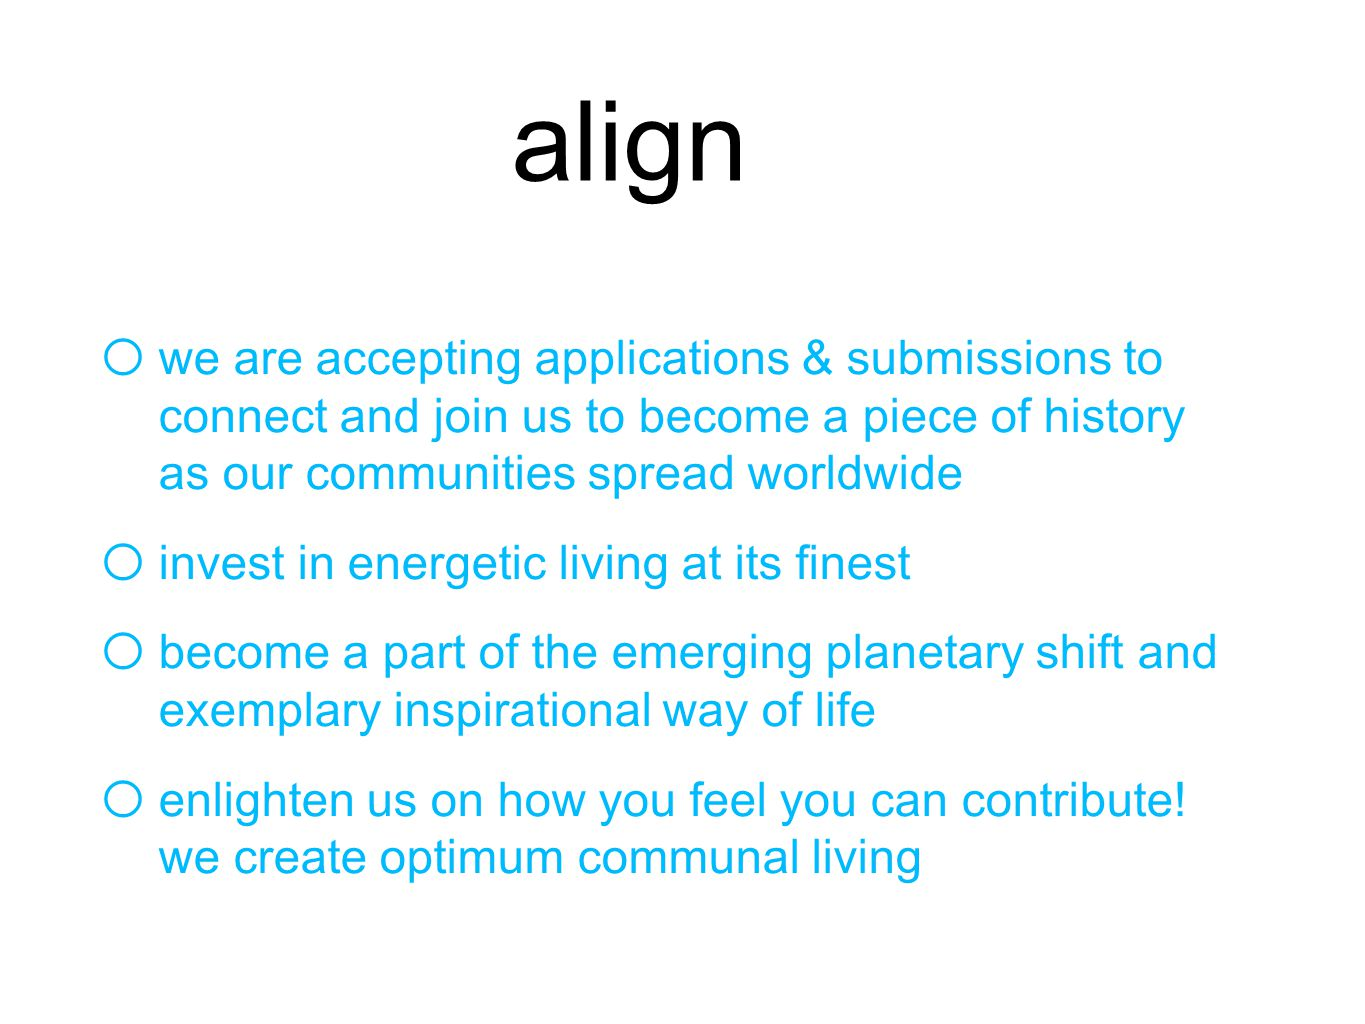 align o we are accepting applications & submissions to connect and join us to become a piece of history as our communities spread worldwide o invest in energetic living at its finest o become a part of the emerging planetary shift and exemplary inspirational way of life o enlighten us on how you feel you can contribute.